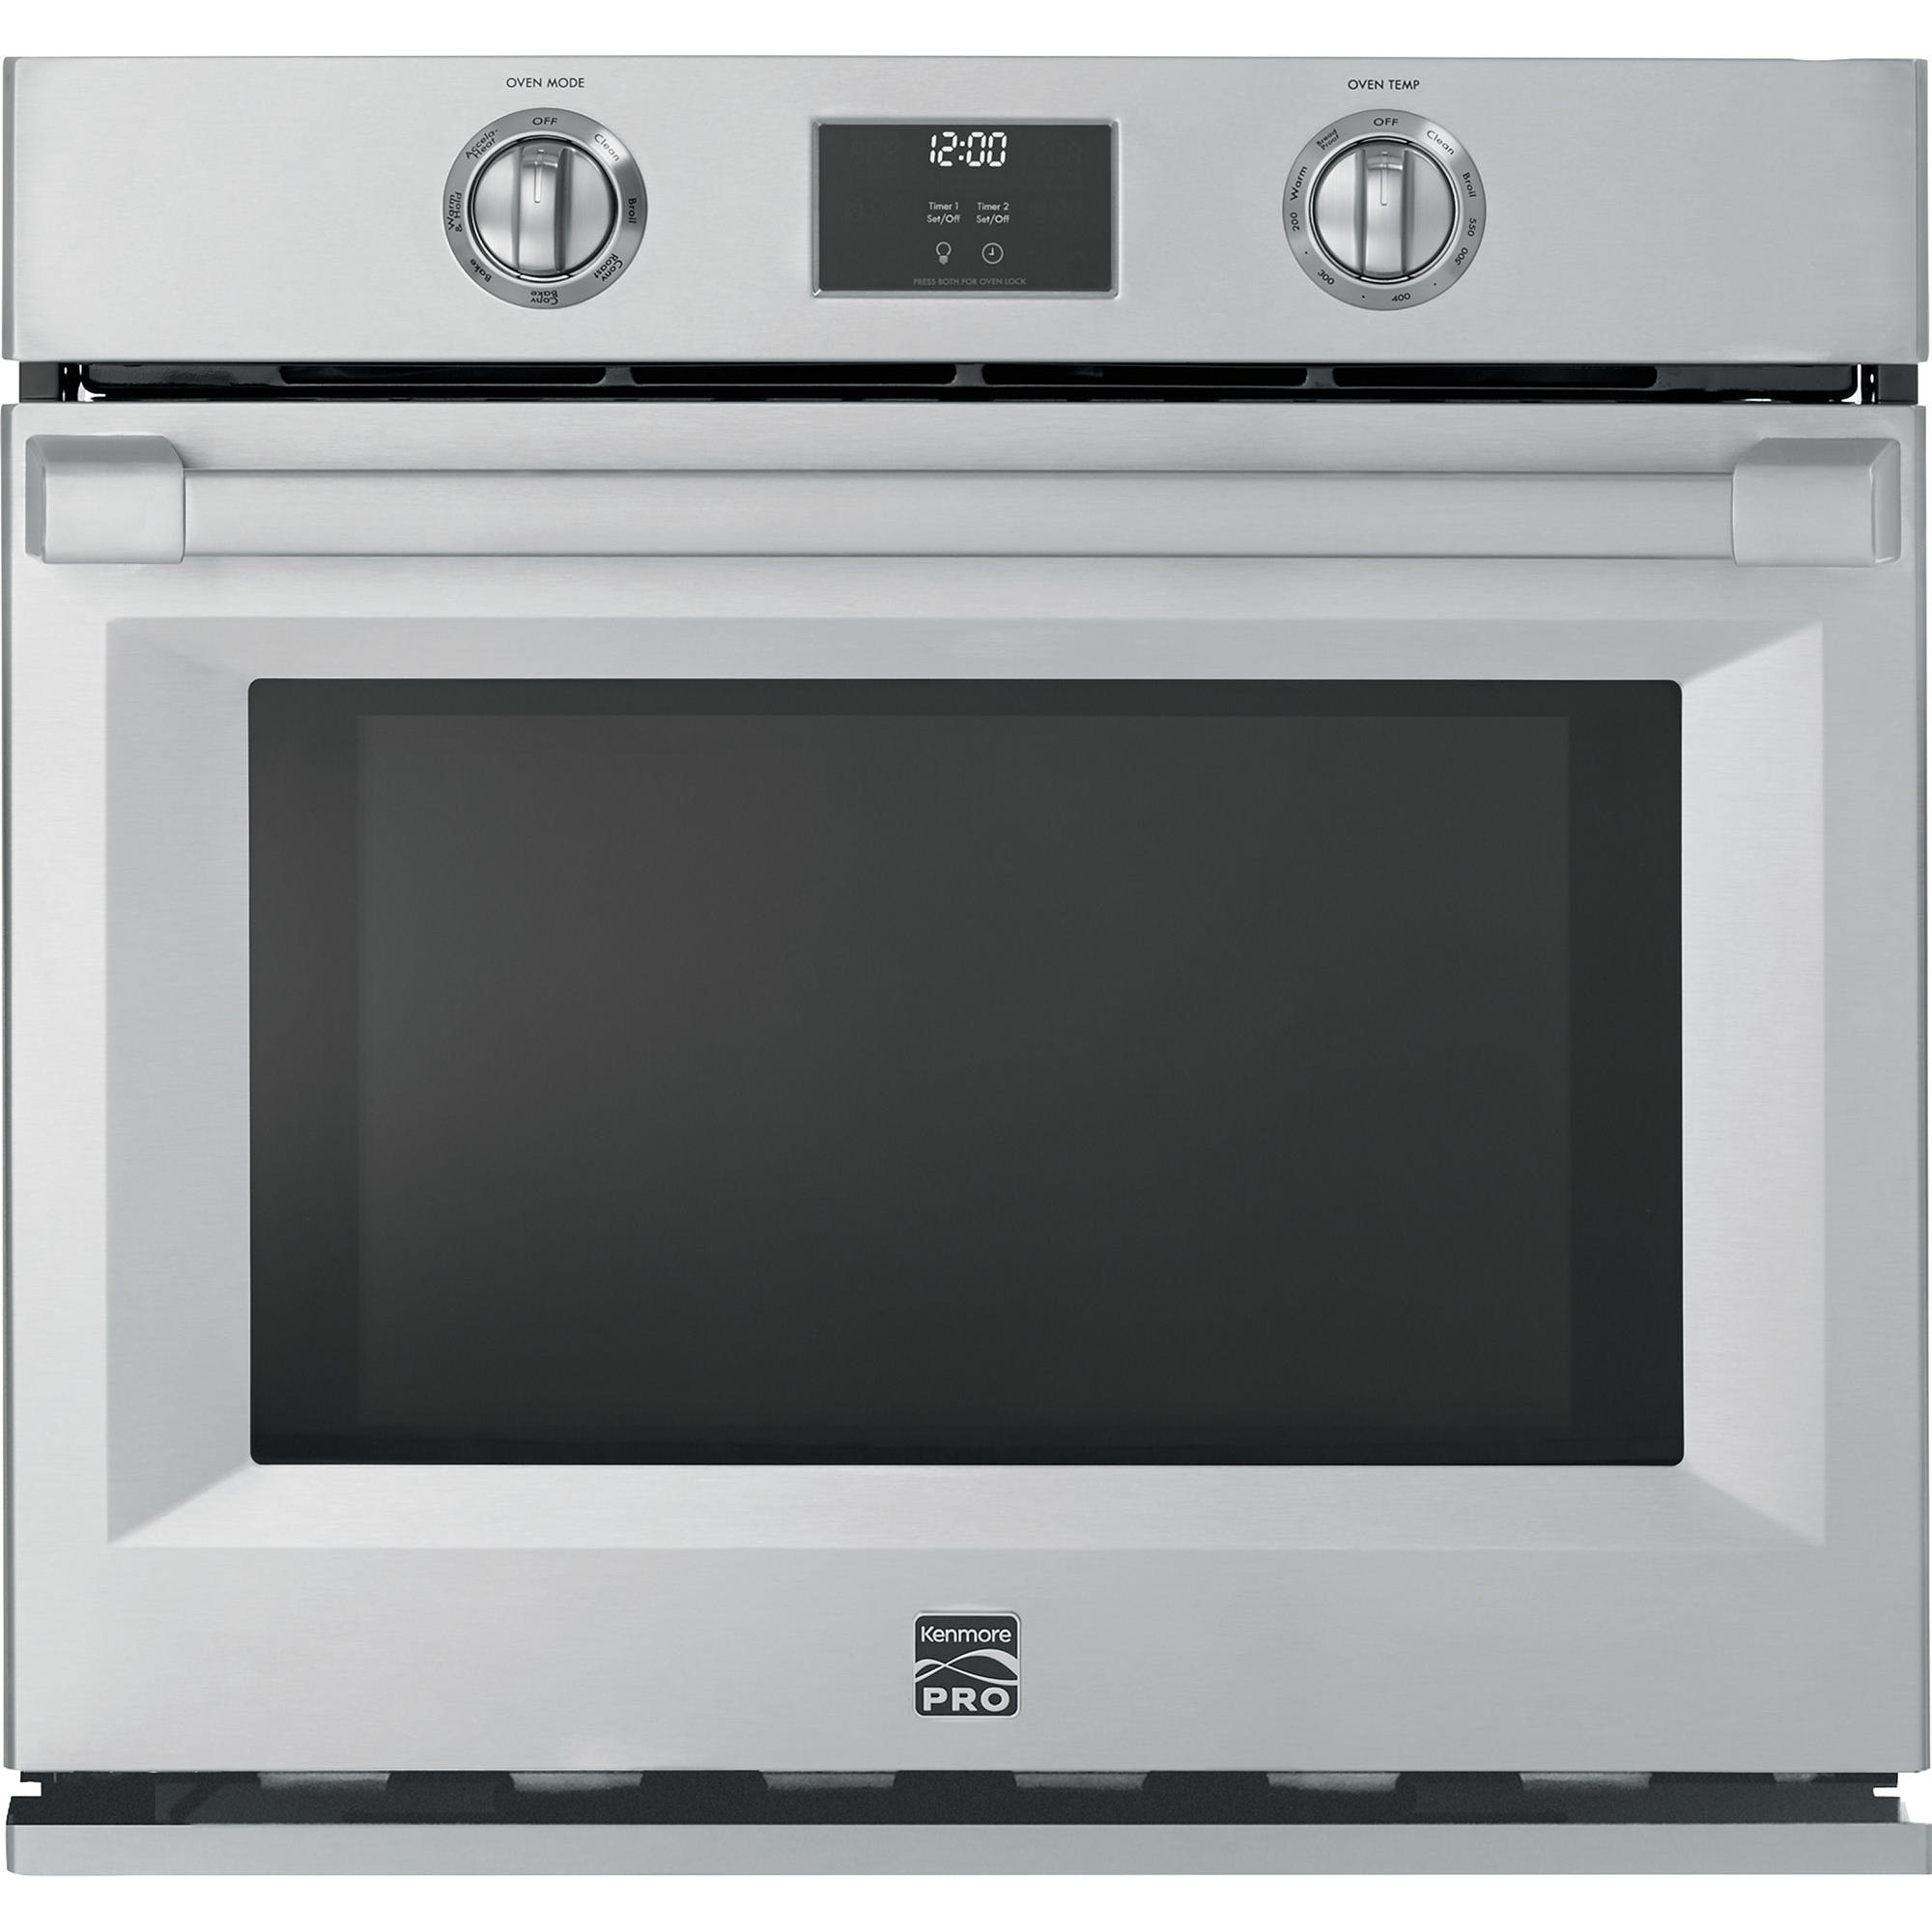 medium resolution of kenmore pro 41153 30 electric self clean single wall oven rh sears com kenmore wall oven kenmore wall oven control board wiring diagram